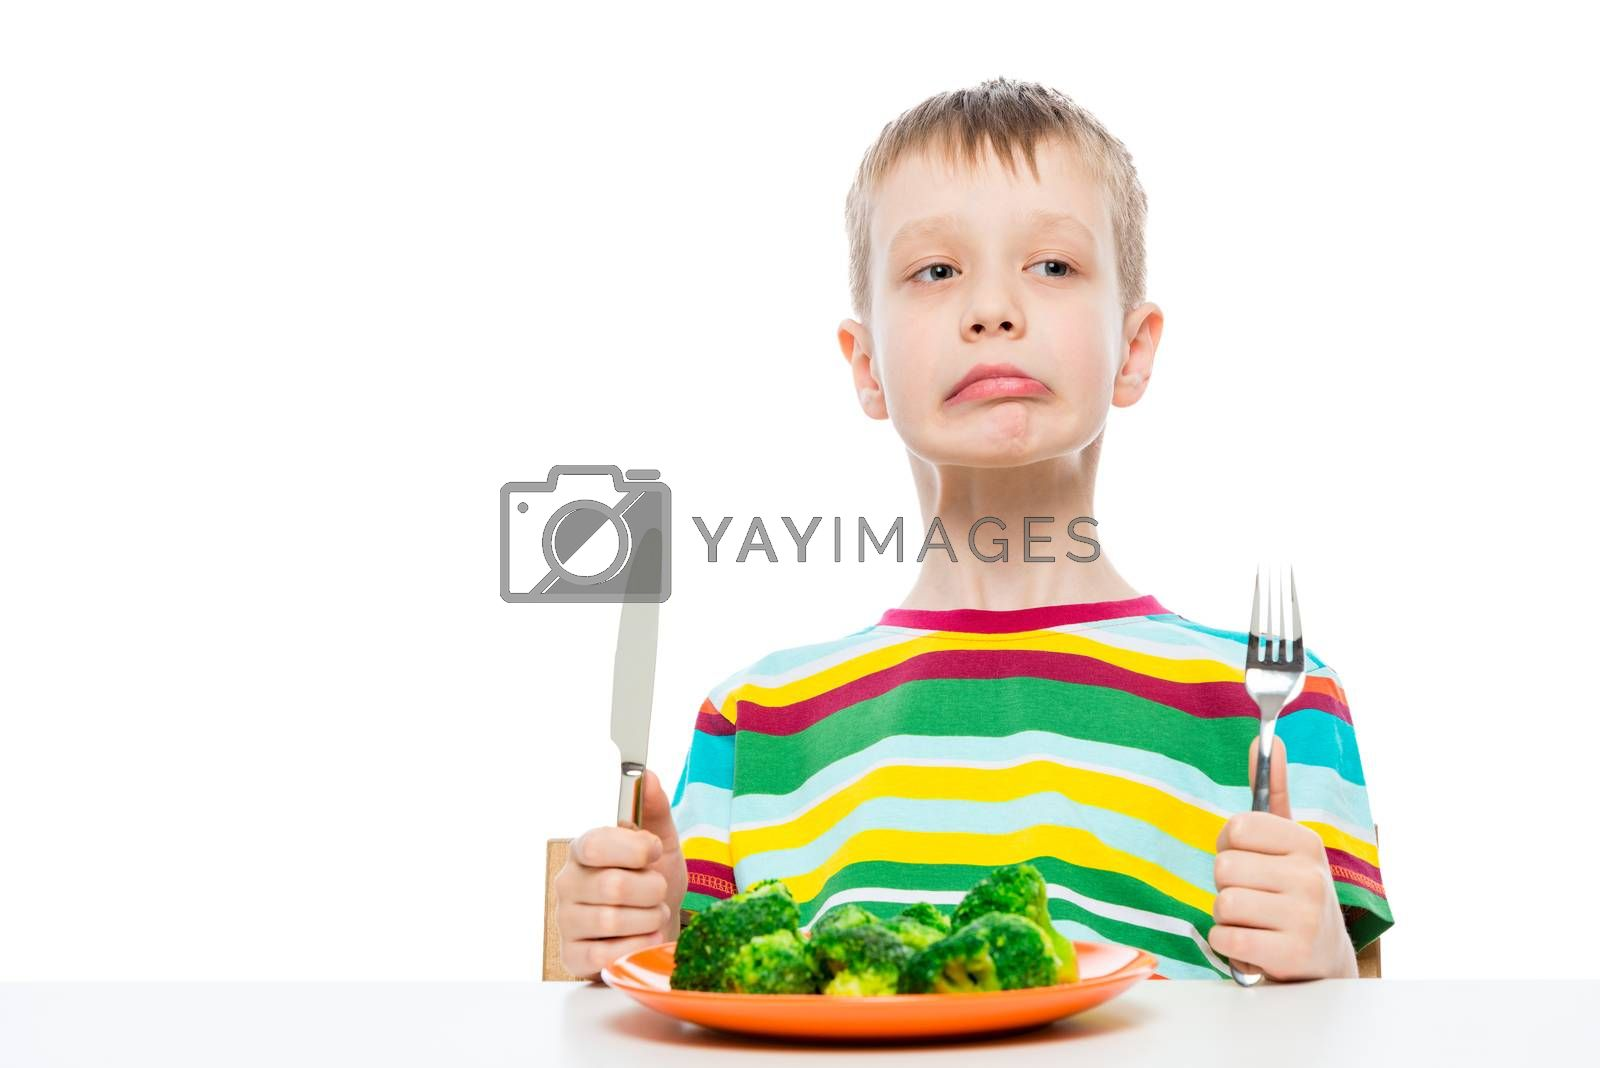 Boy disgusted with eating broccoli, portrait isolated on white background